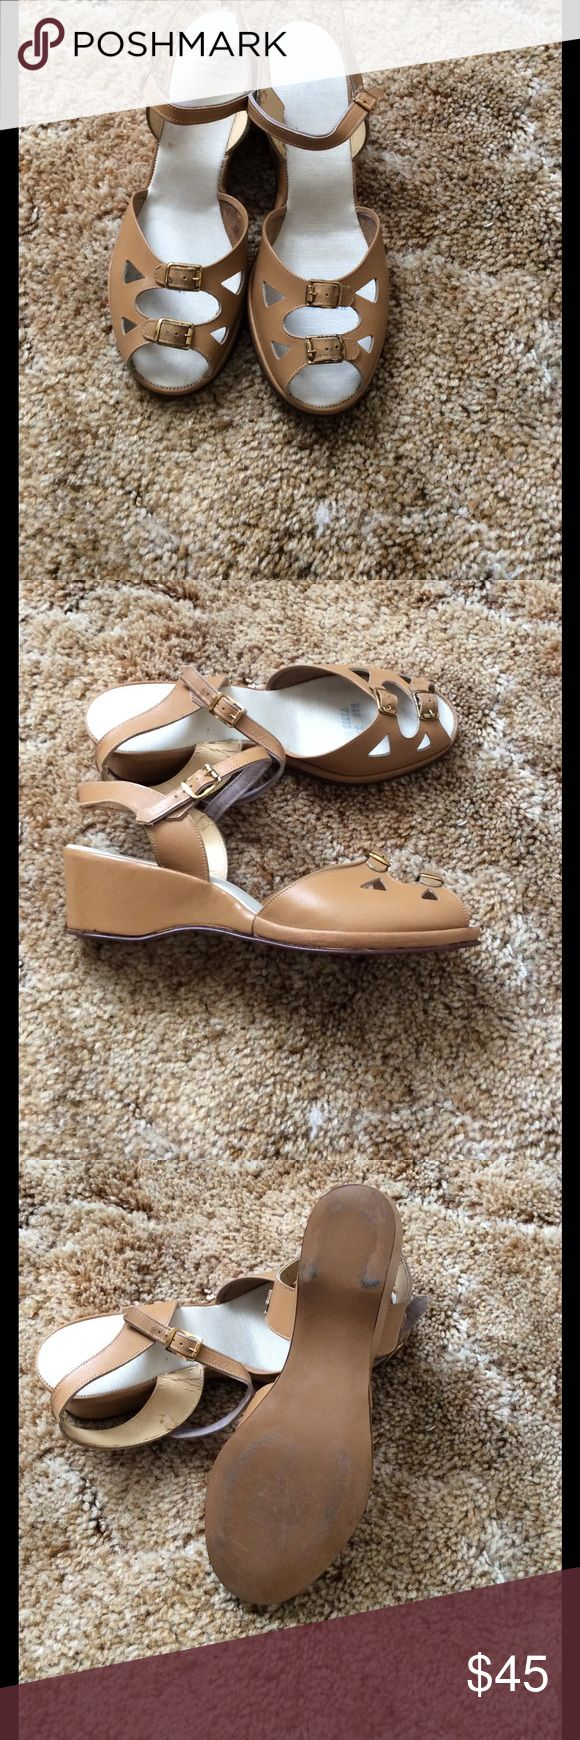 Vintage ladies wedge sandals Vintage (some time mid century)Sandals pretty good shape after so long probably were not used too many times Smart Maid Shoes Platforms